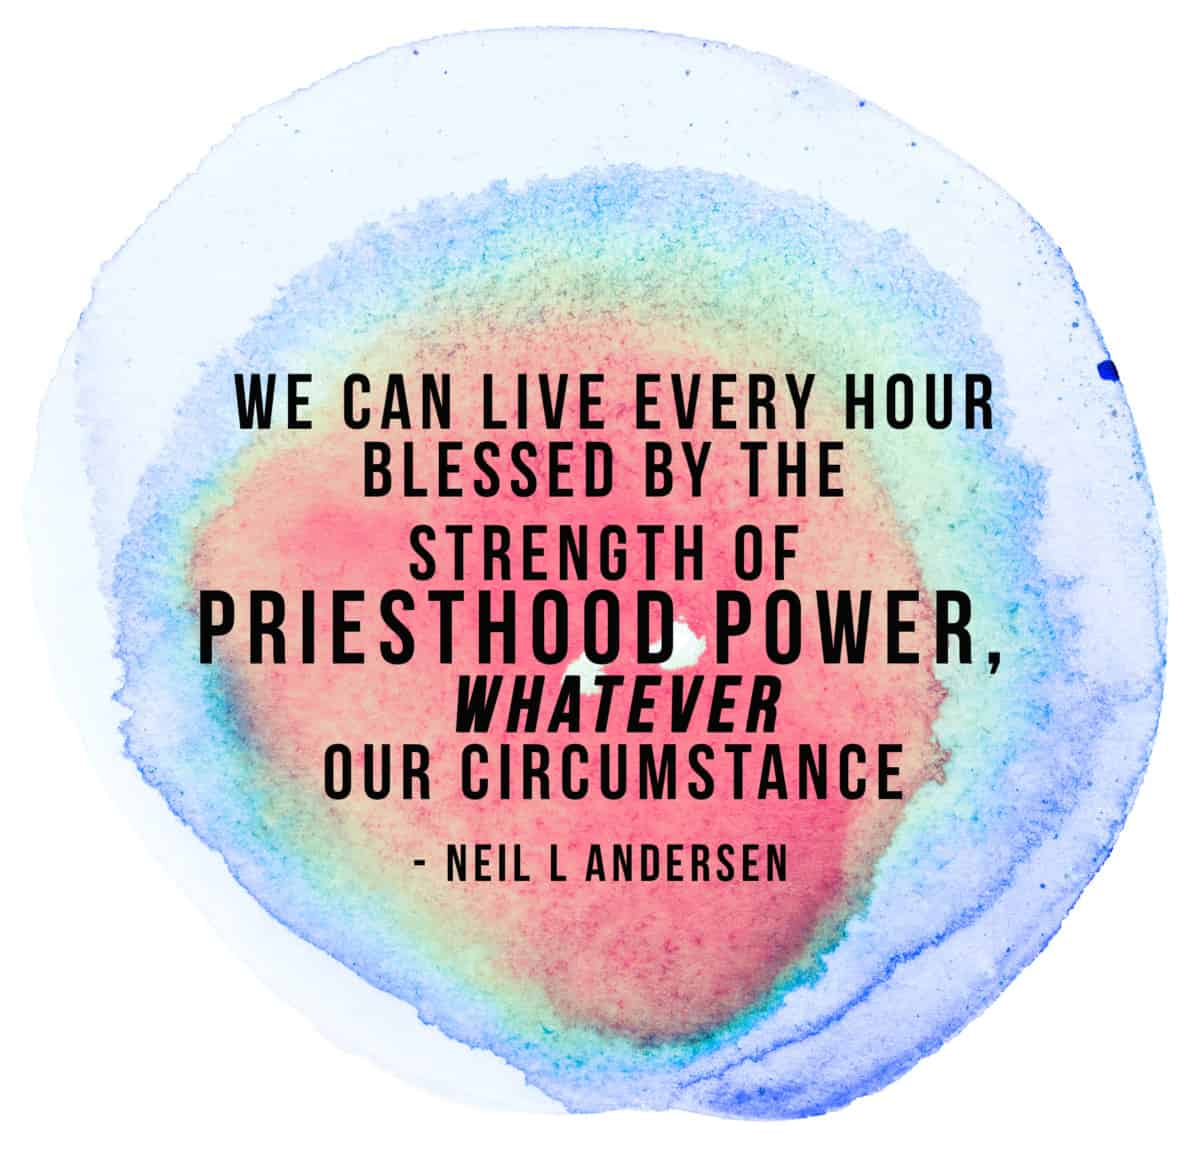 """We can live every hour blessed by the strength of priesthood power, whatever our circumstance."""" - Neil L Andersen"""